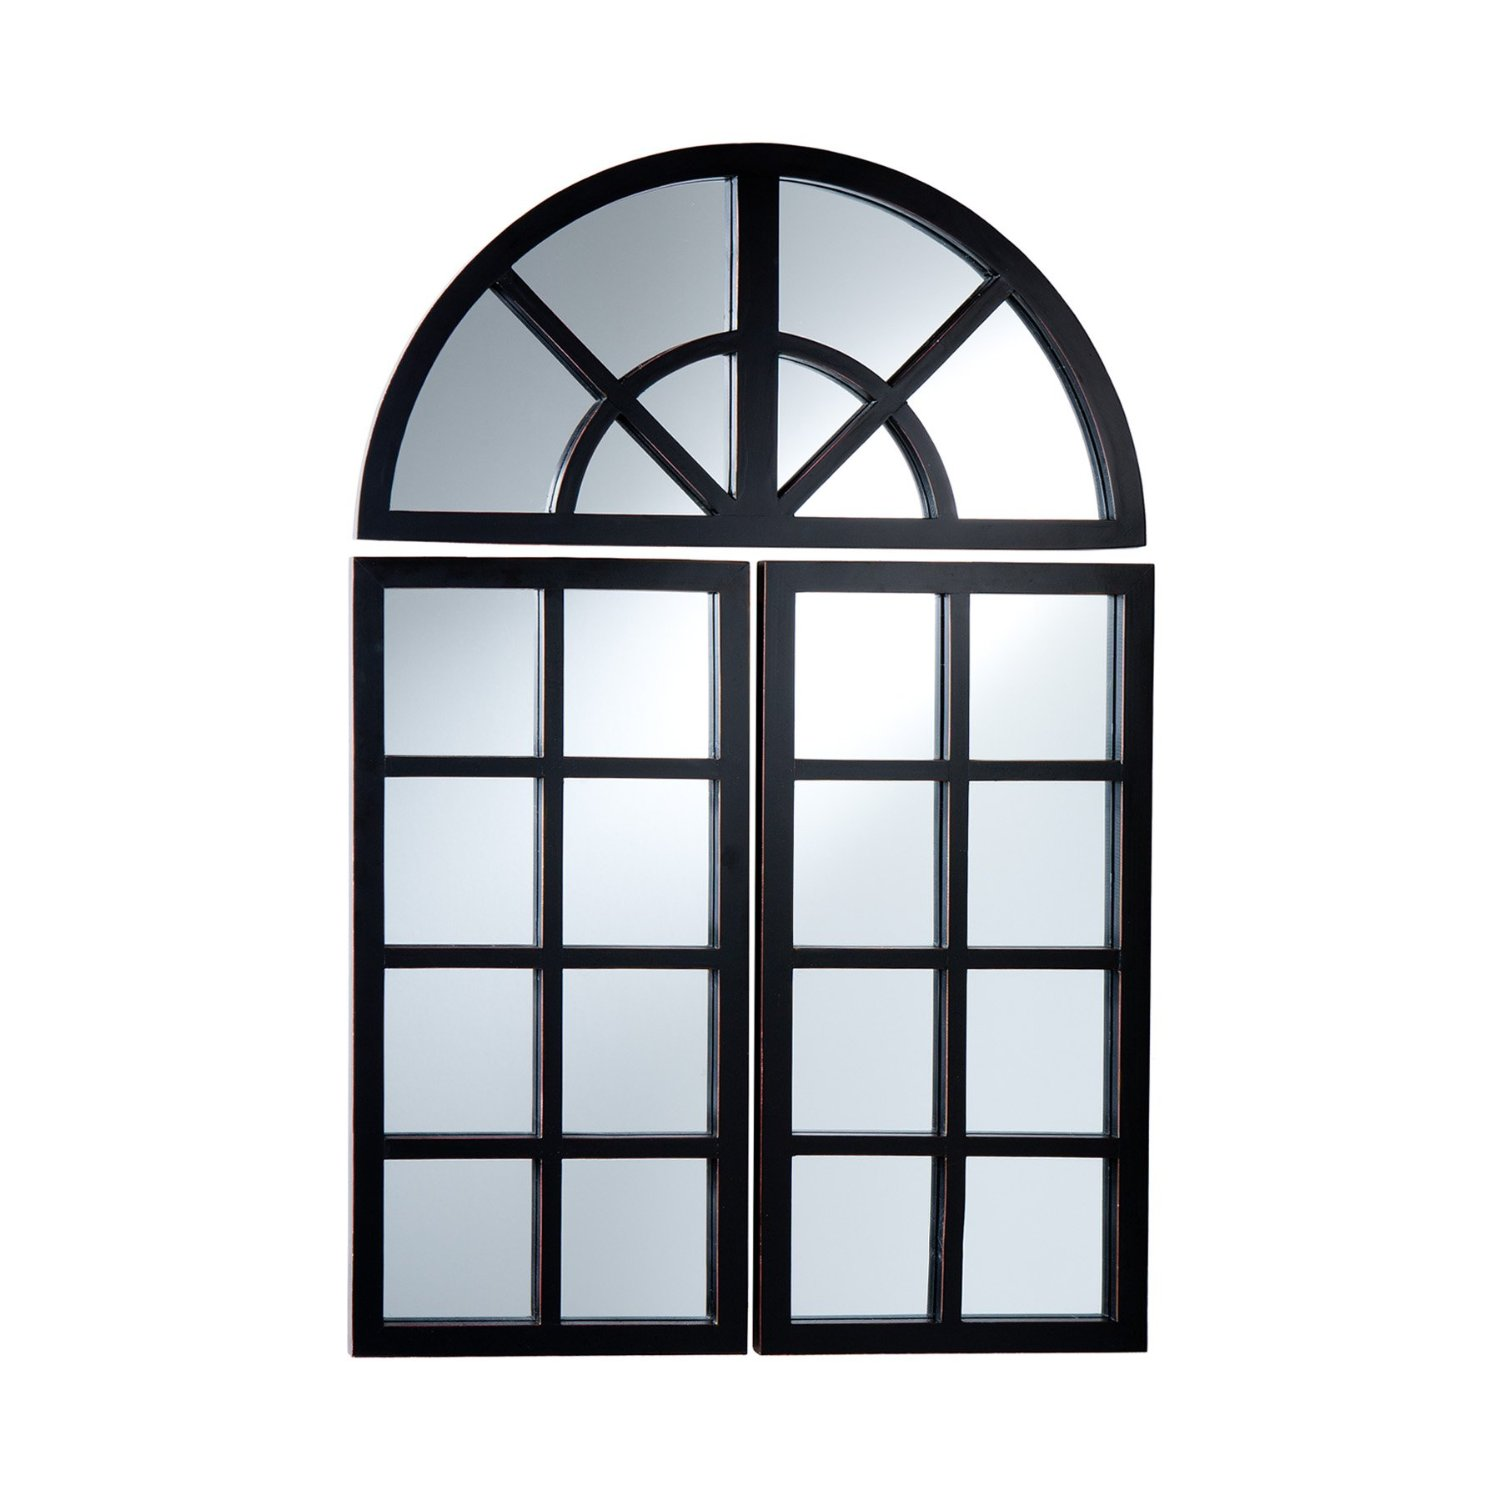 Glass window clipart 20 free Cliparts | Download images on ... |Window Pane Clipart